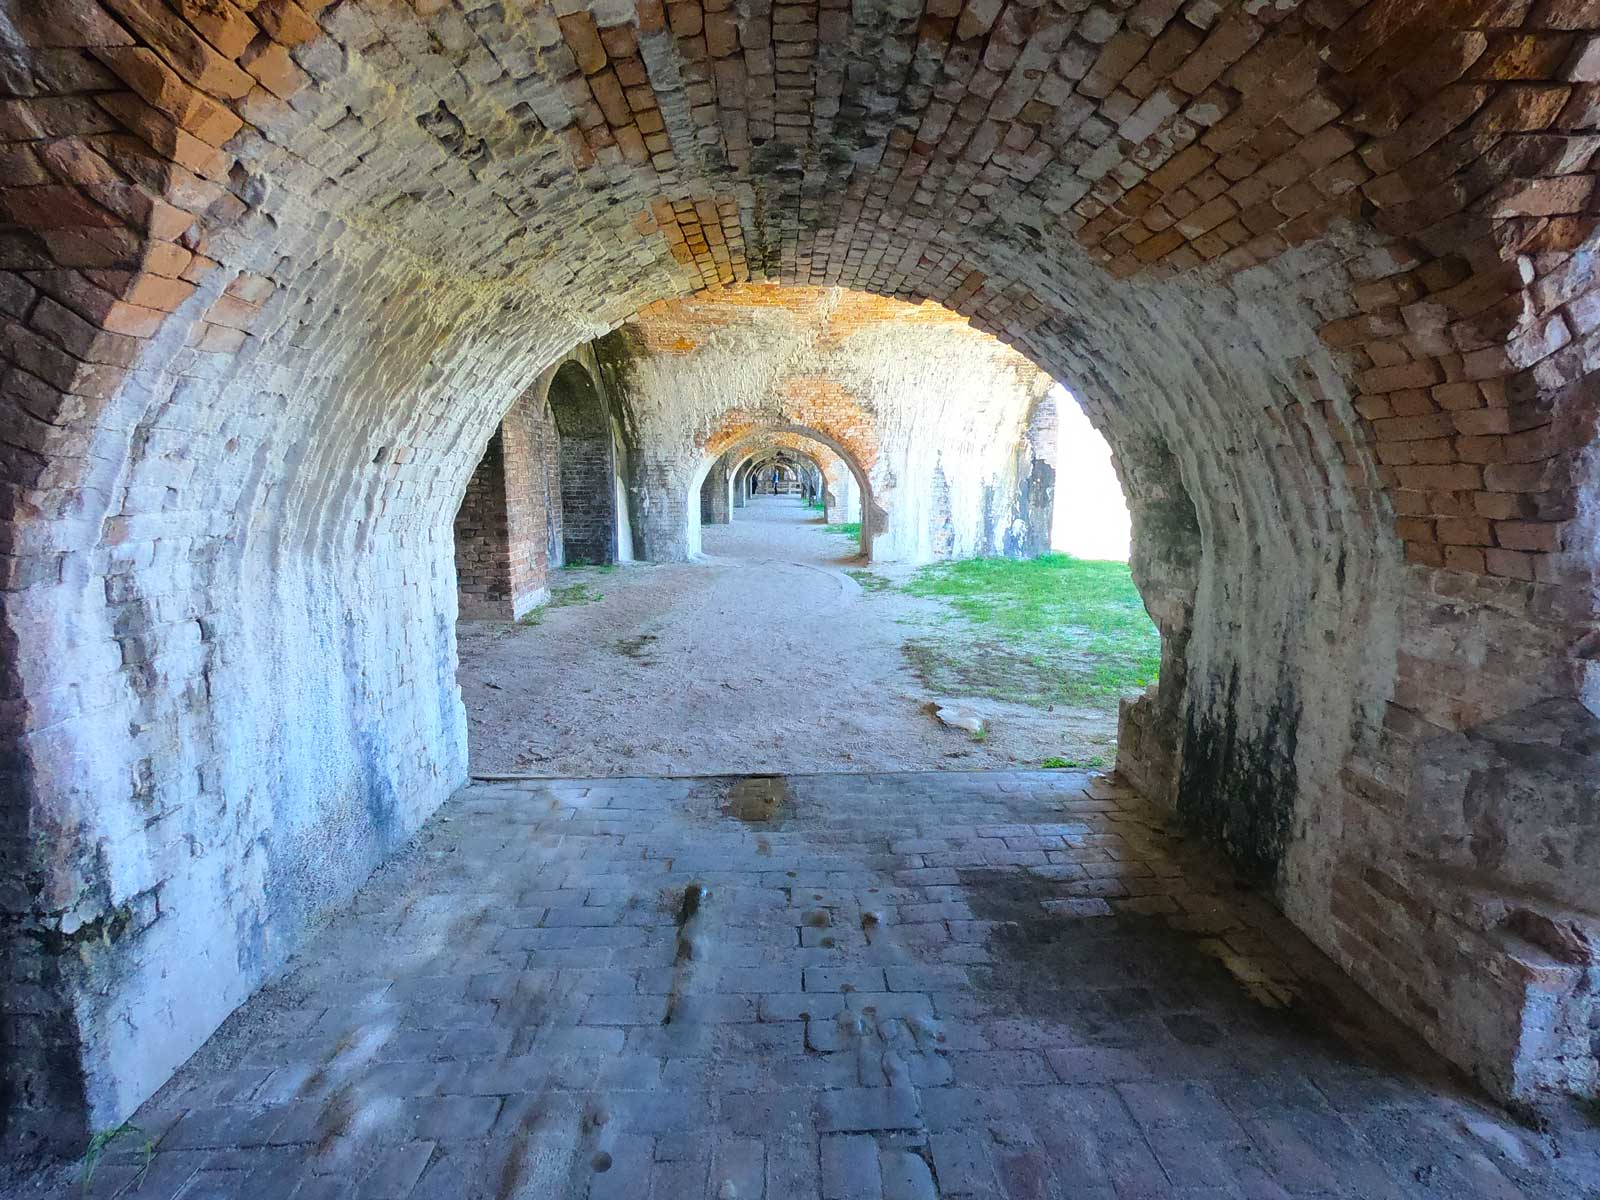 Brick archway construction at Fort Pickens, Pensacola Beach, Florida